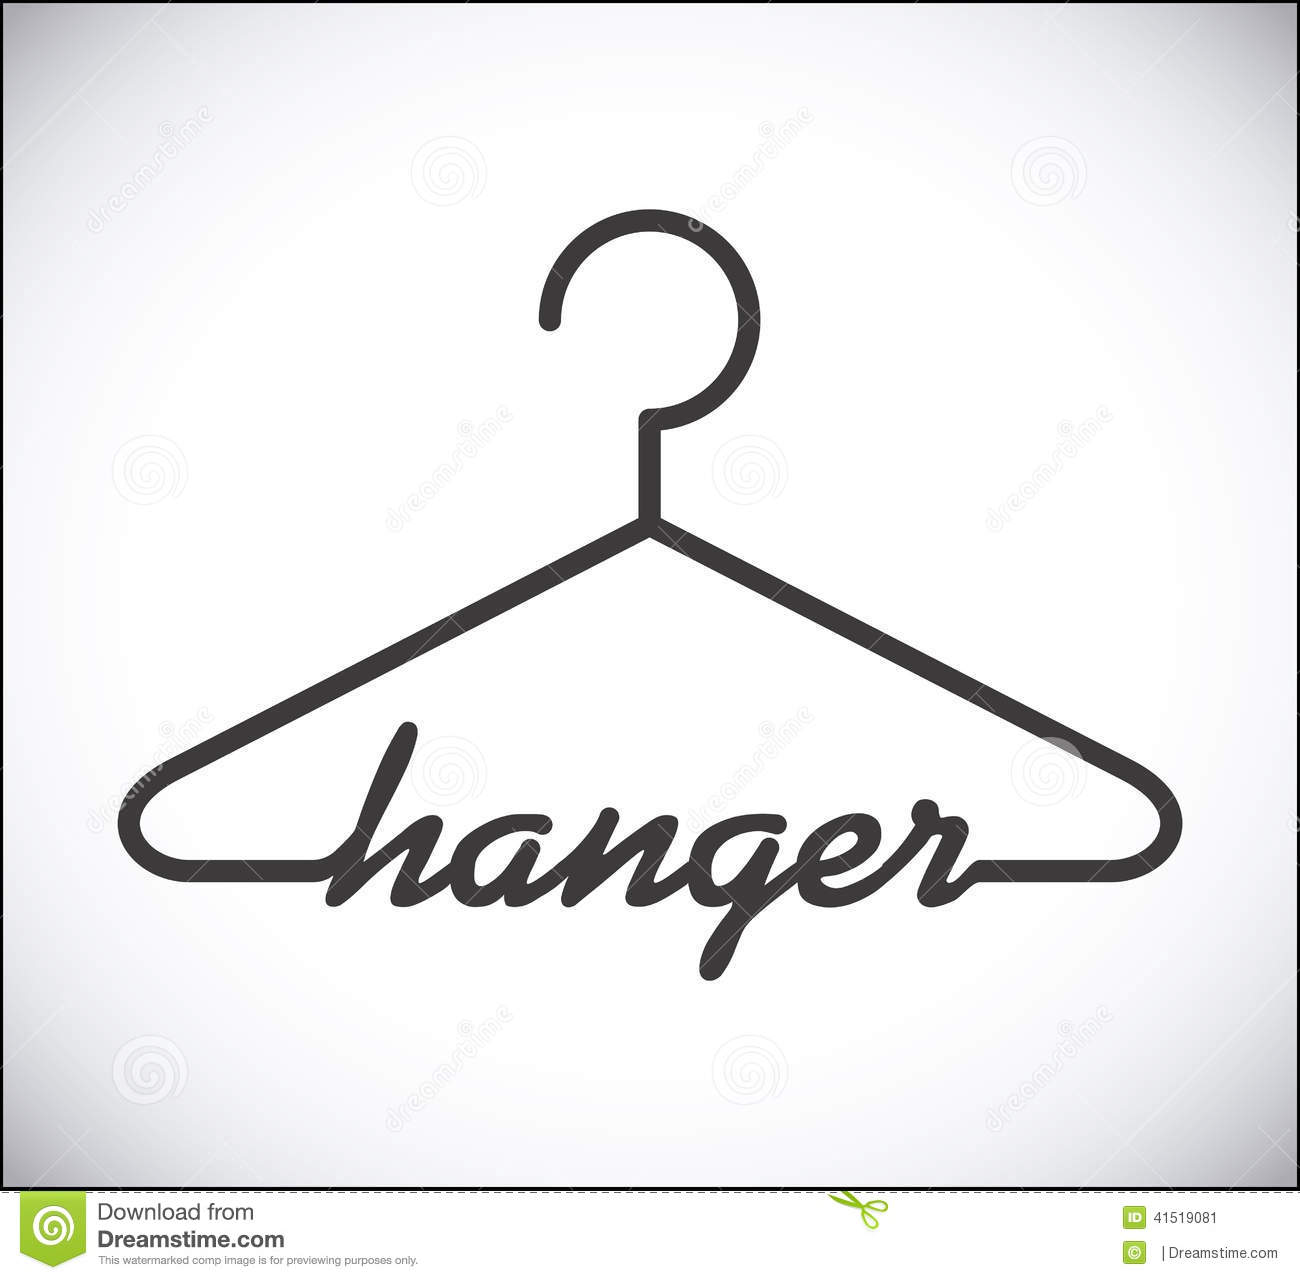 Hanger design over white background, vector illustration.